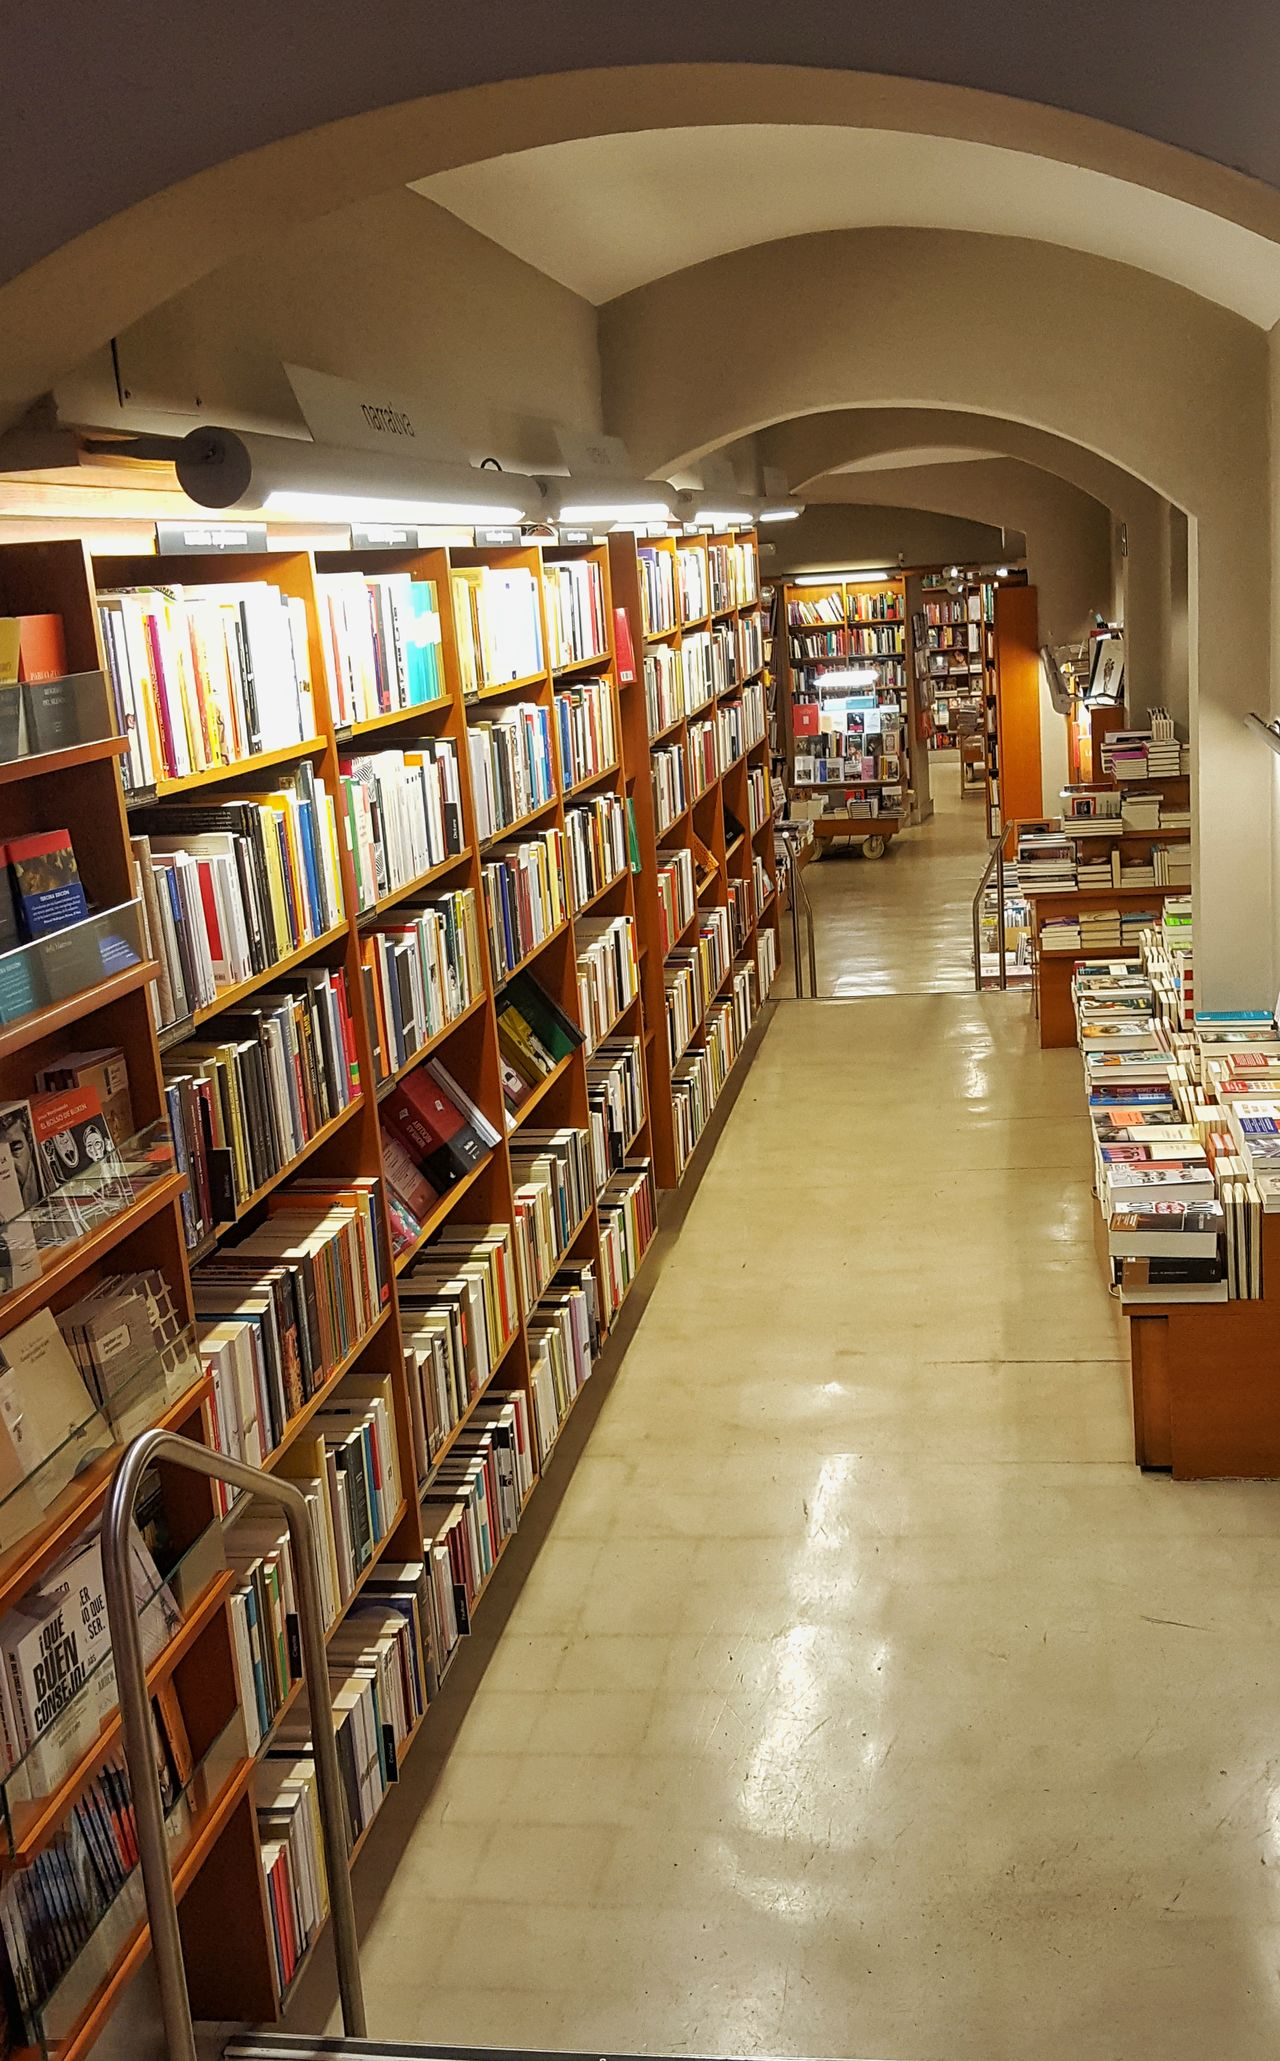 Mi tunel preferido , regalos para los que quiero....🎁🎁🎁Finding New Frontiers Bookshelf Large Group Of Objects Indoors  Library No People Bookstore Books ♥ Books Book Store Book Collections Here And Now